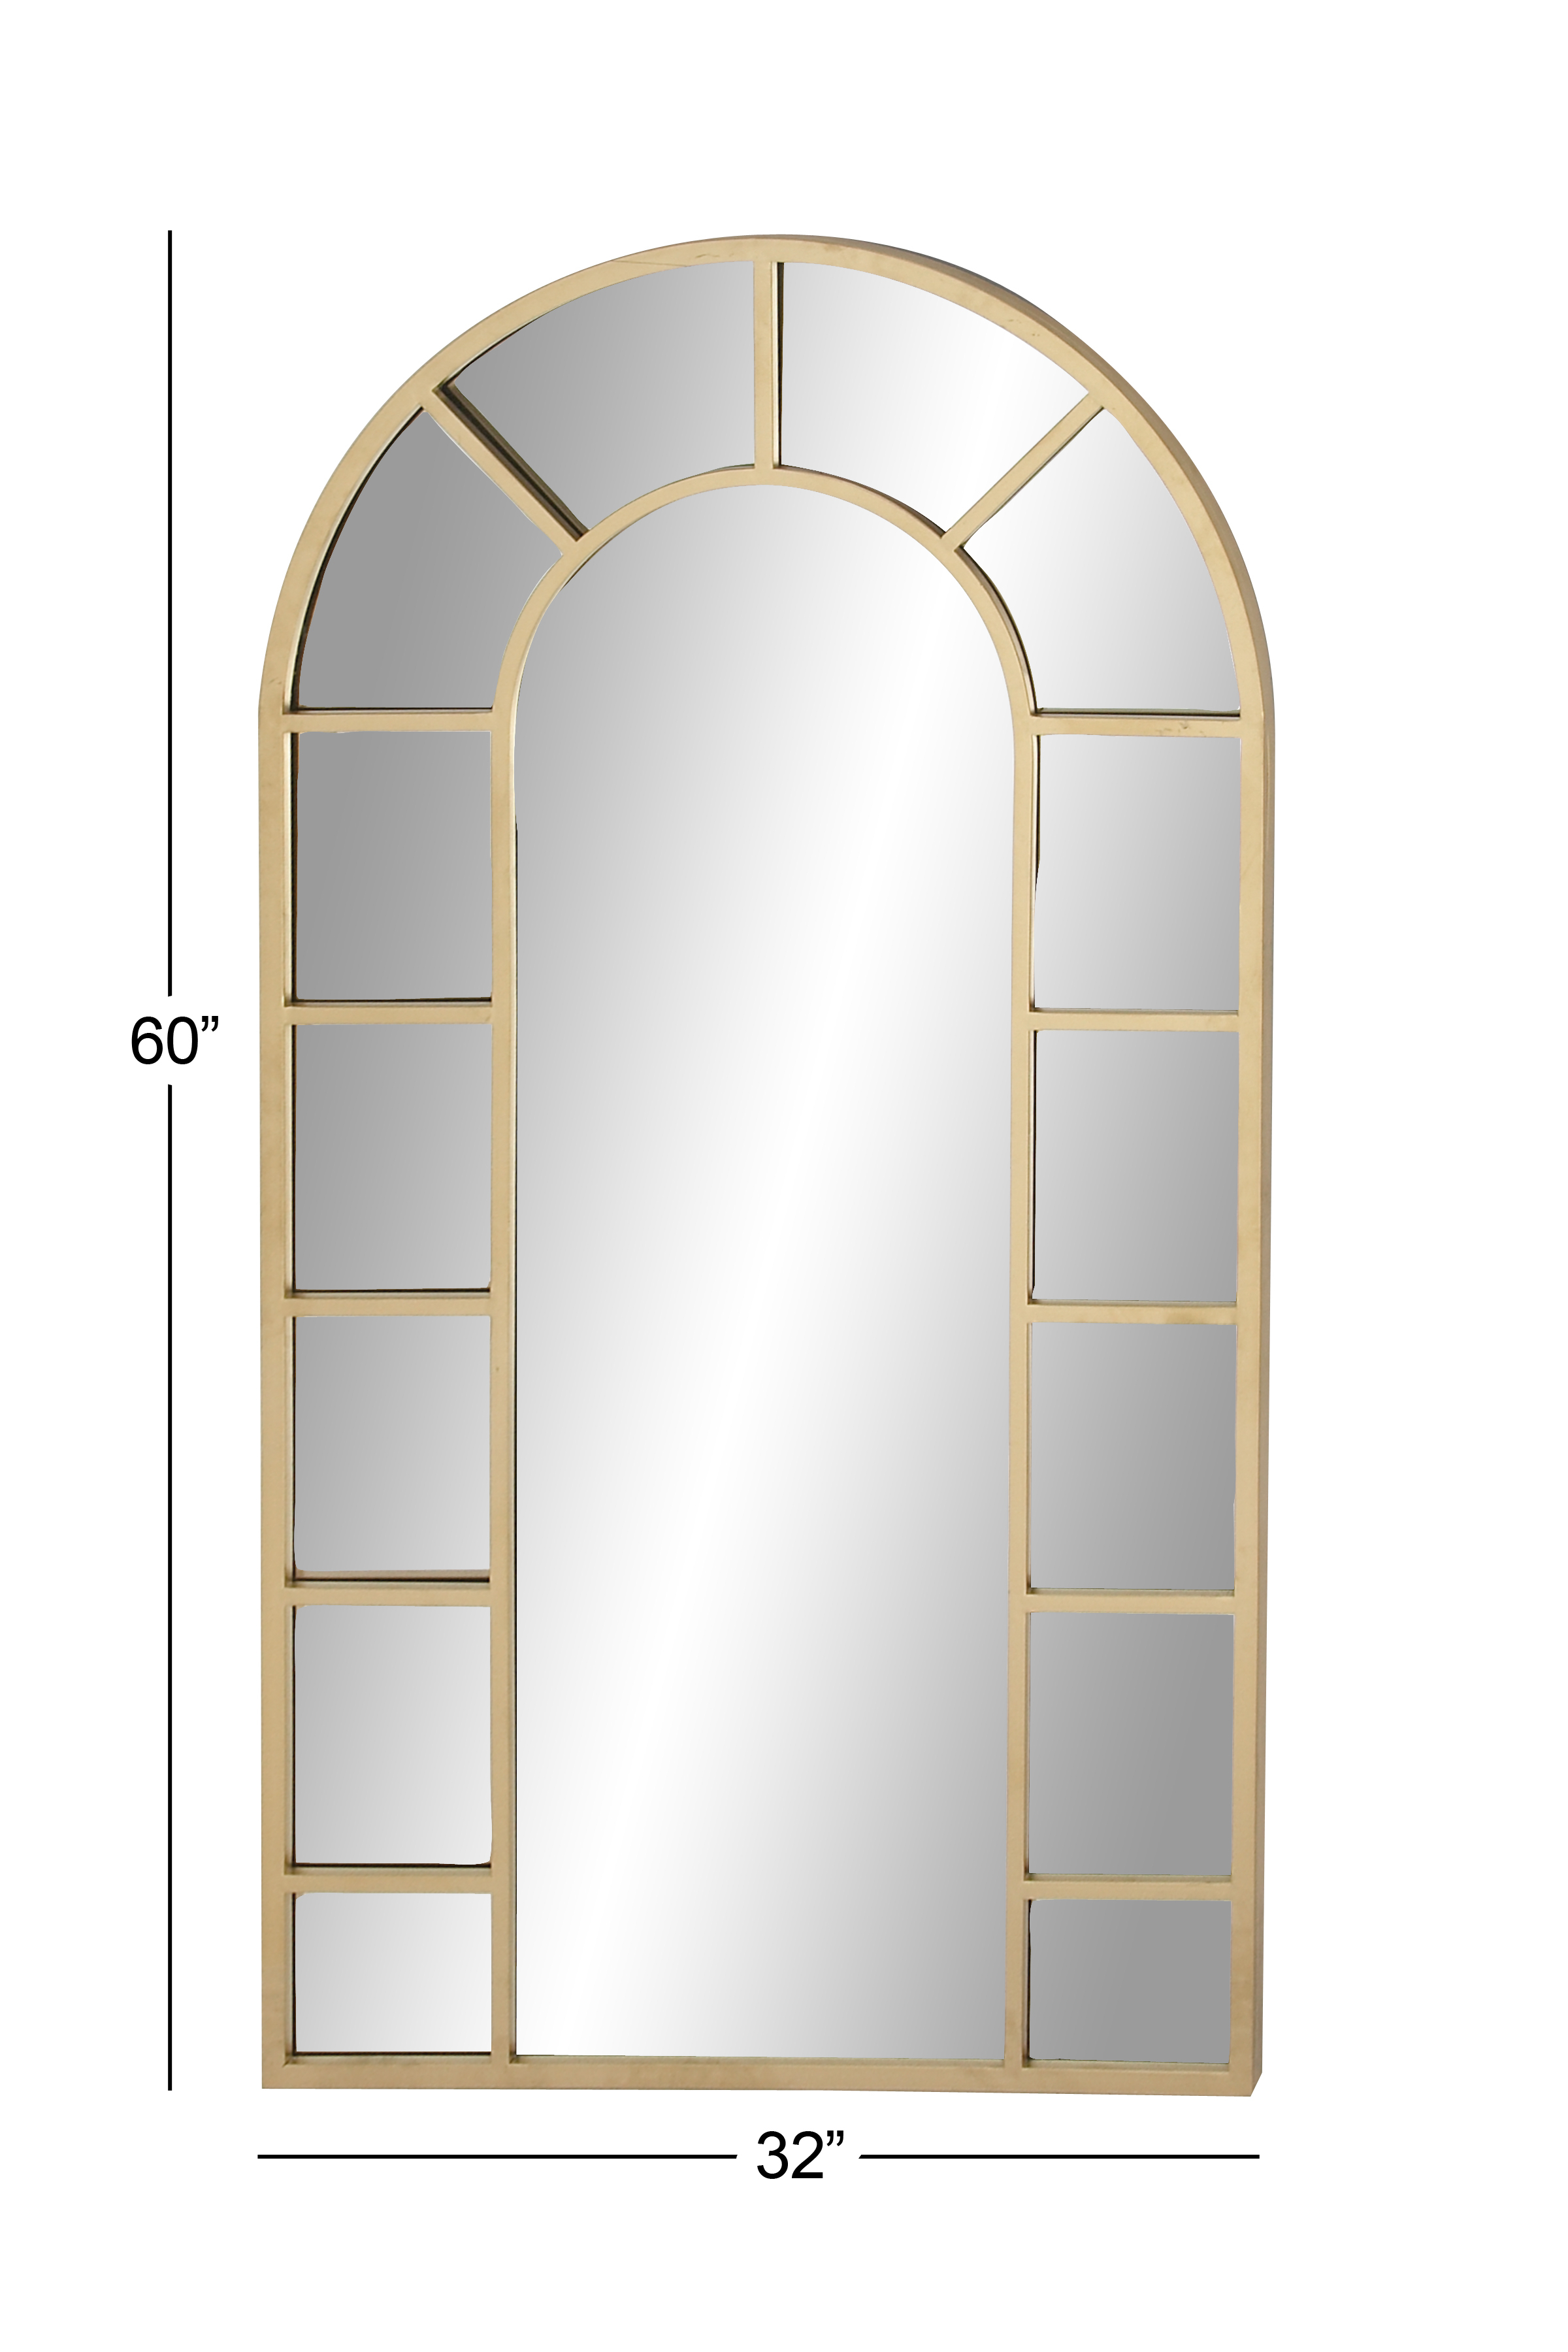 Decmode Contemporary Wood And Metal Arched Gold Wall Mirror, Gold in Arch Vertical Wall Mirrors (Image 15 of 30)